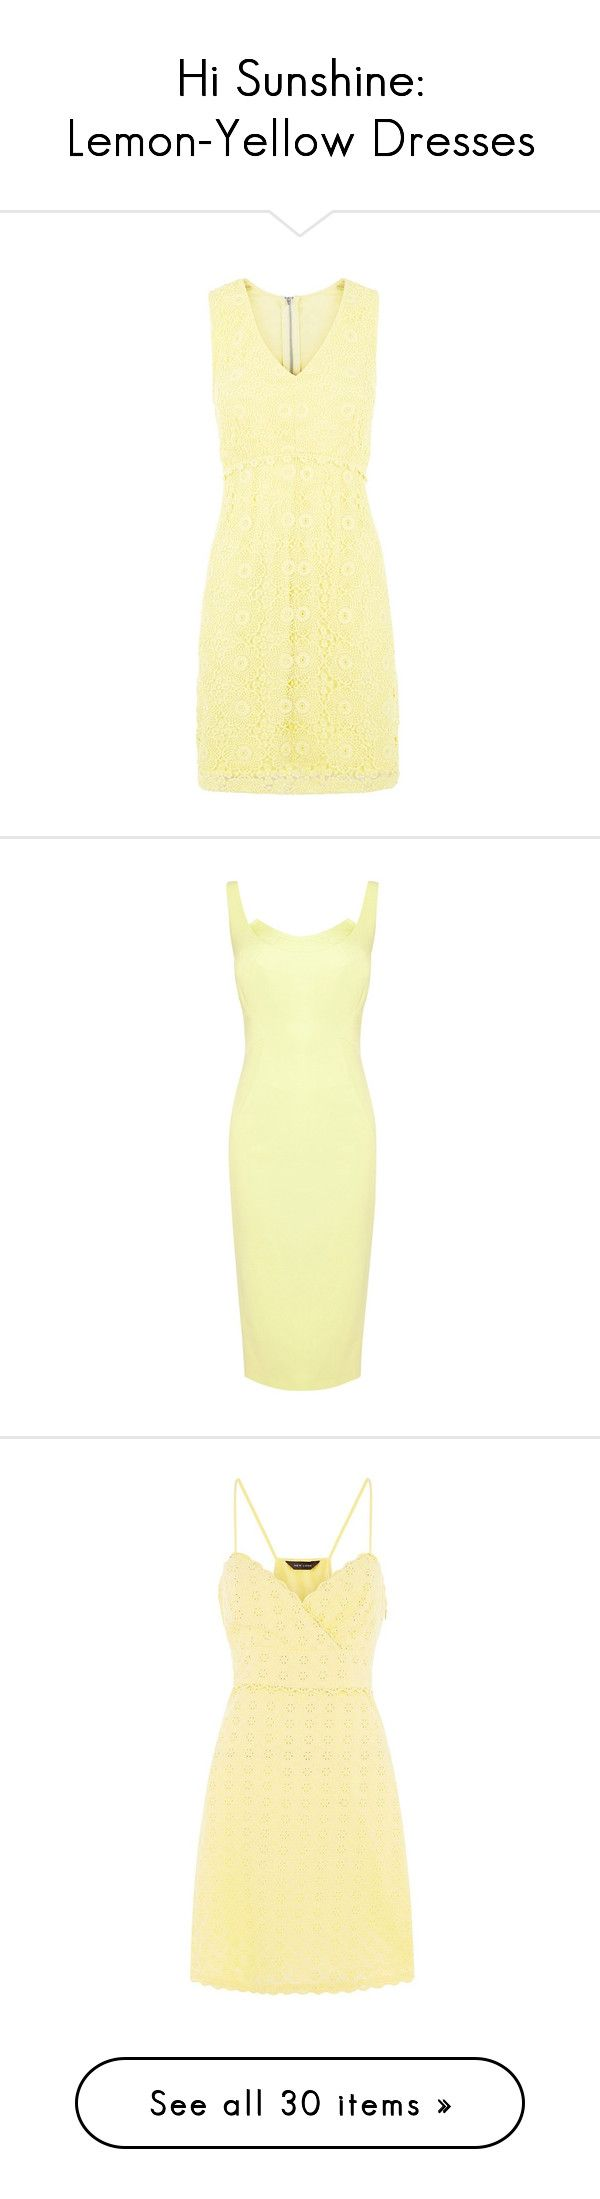 """""""Hi Sunshine: Lemon-Yellow Dresses"""" by polyvore-editorial ❤ liked on Polyvore featuring yellowdress, dresses, yellow, summer dresses, yellow summer dress, yellow shift dress, yellow dress, lace dress, yellow maxi dress and knee length bodycon dress"""